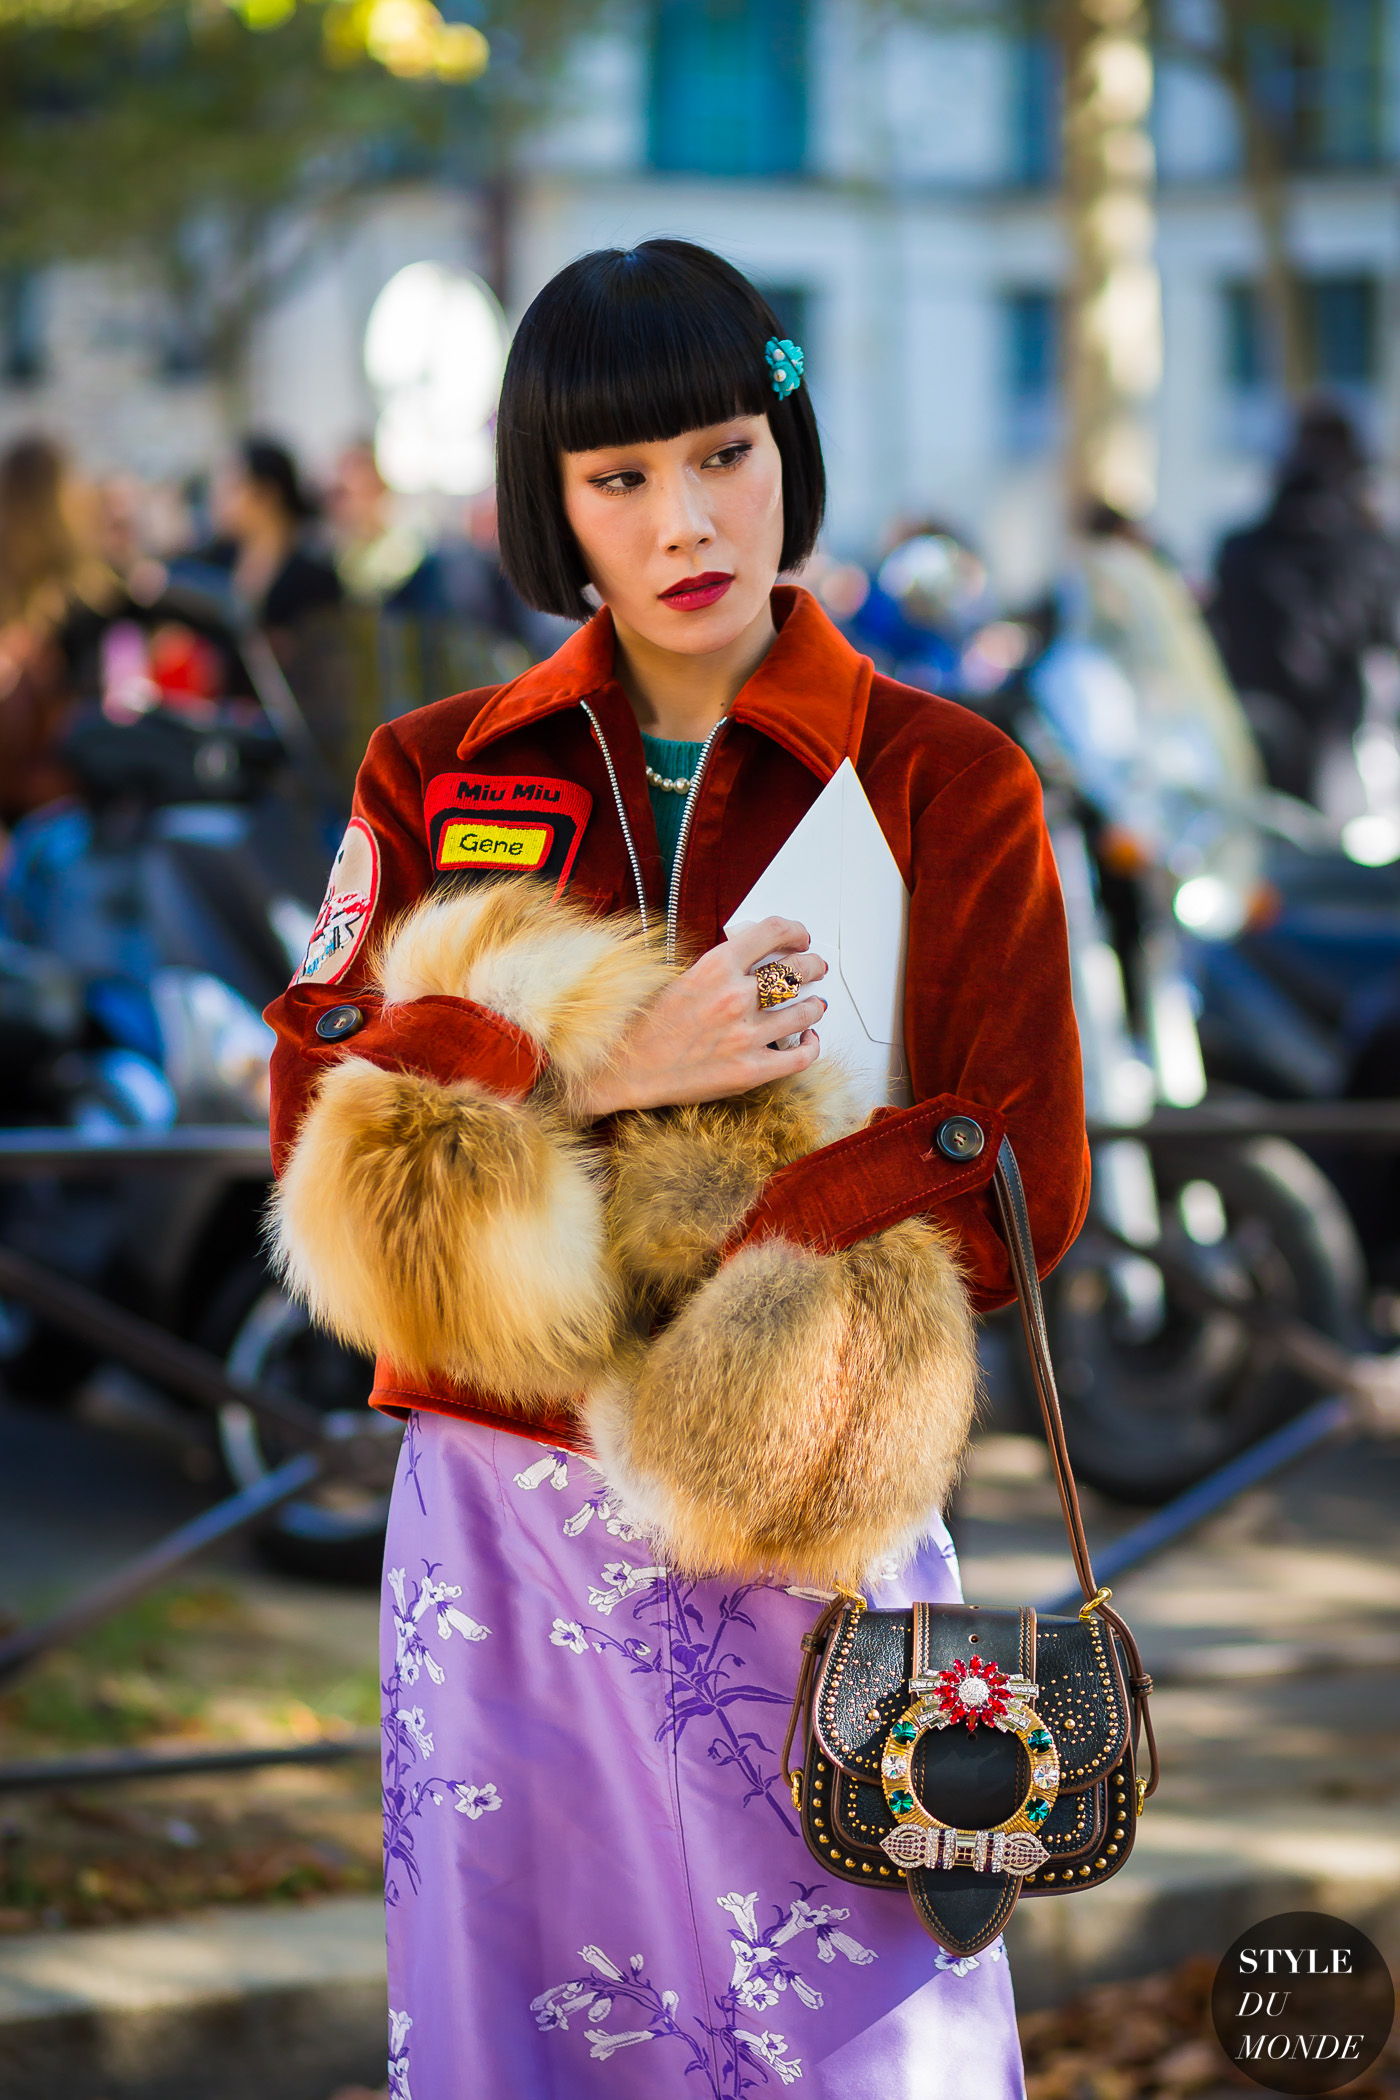 mademoiselle-yulia-by-styledumonde-street-style-fashion-photography0e2a6104